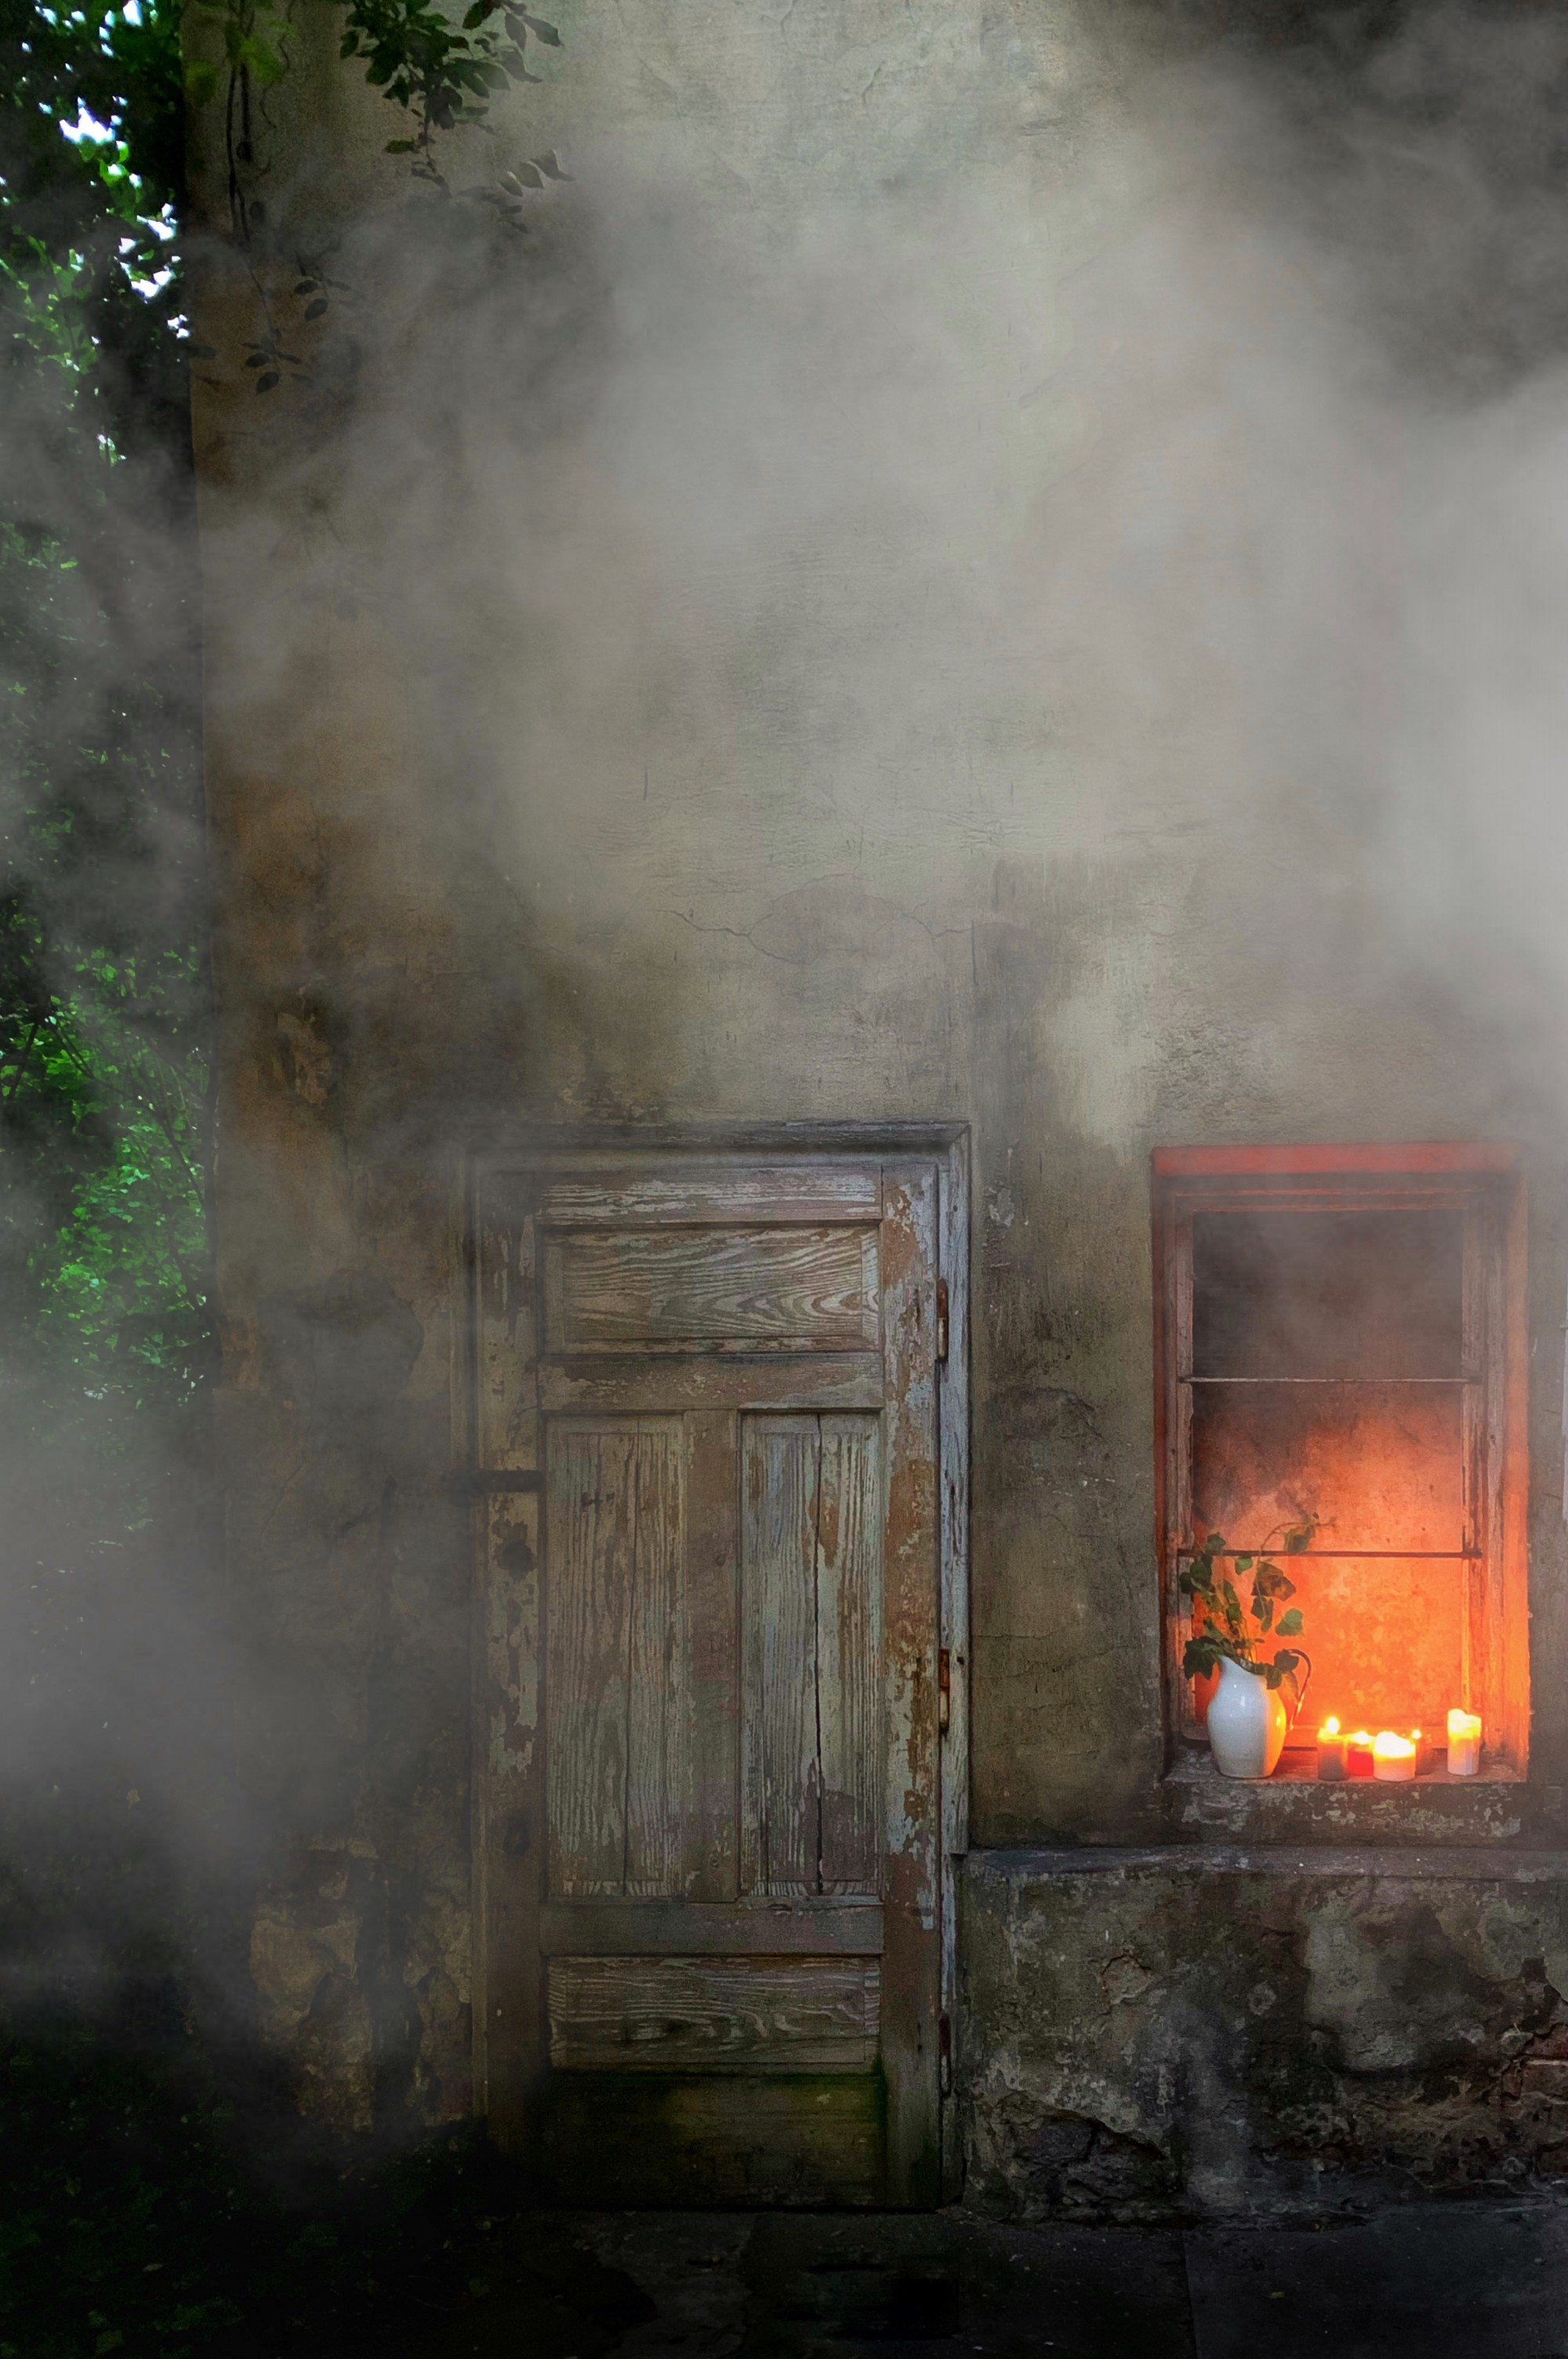 The front of a small old house shrouded in smoke, fire light seen through the window.